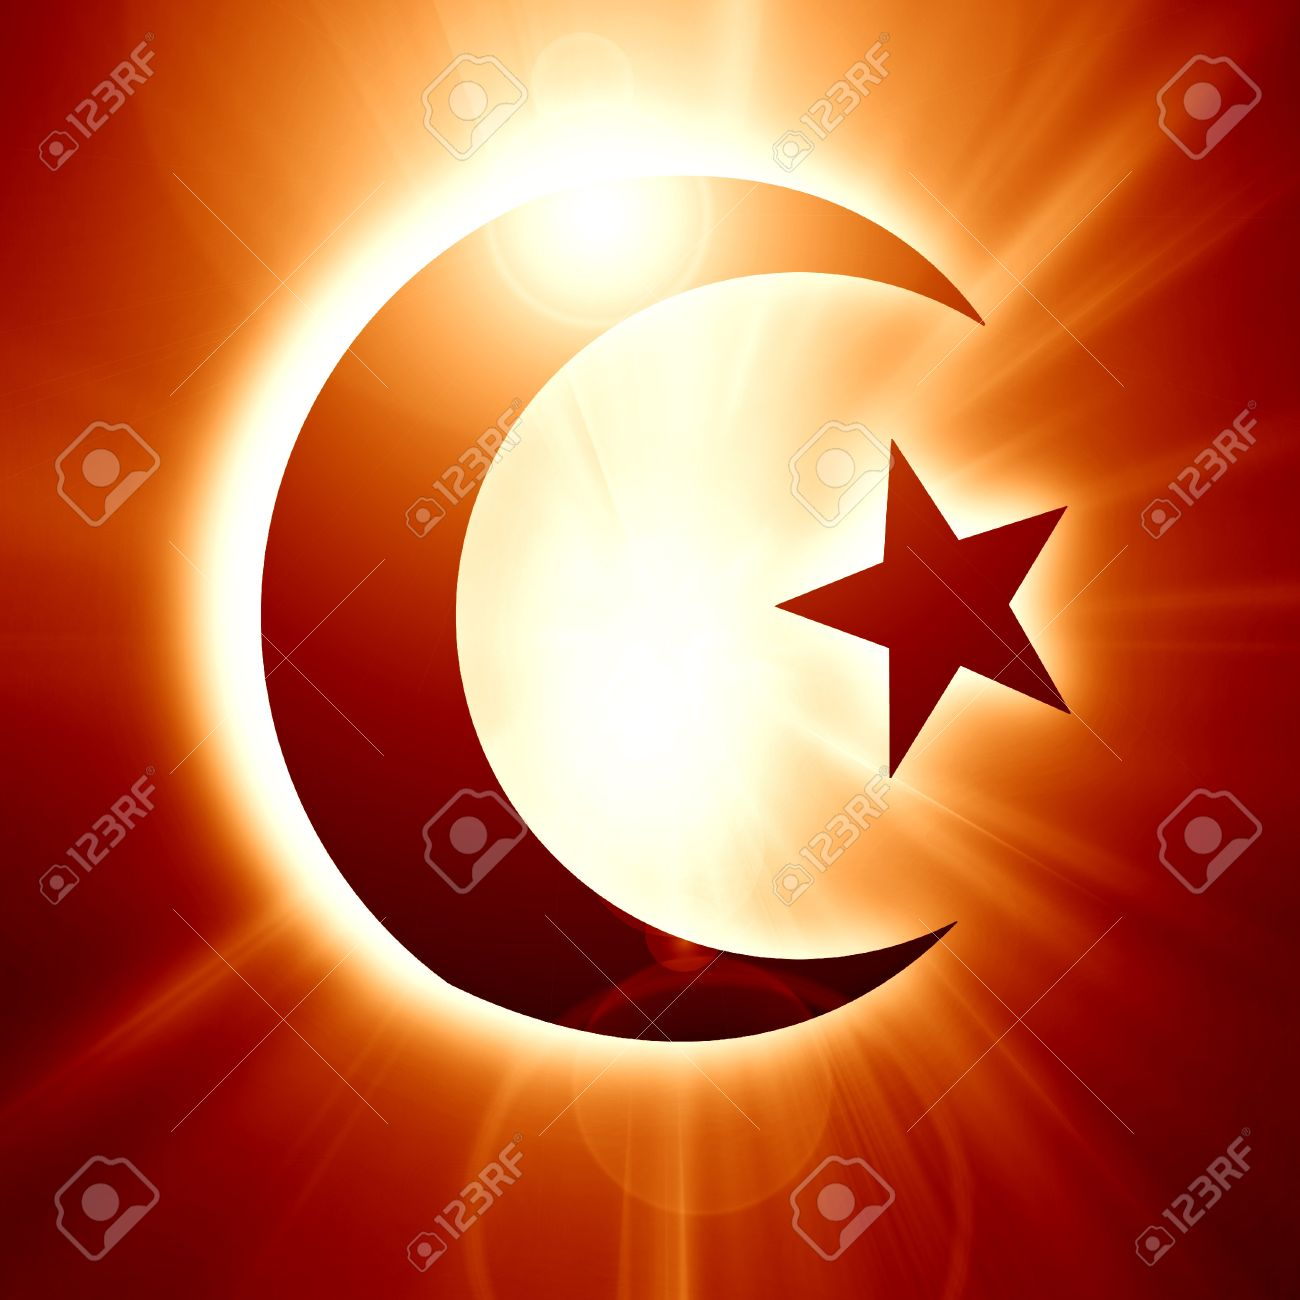 The Symbol Of Islam With A Crescent And Star Stock Photo, Picture ...